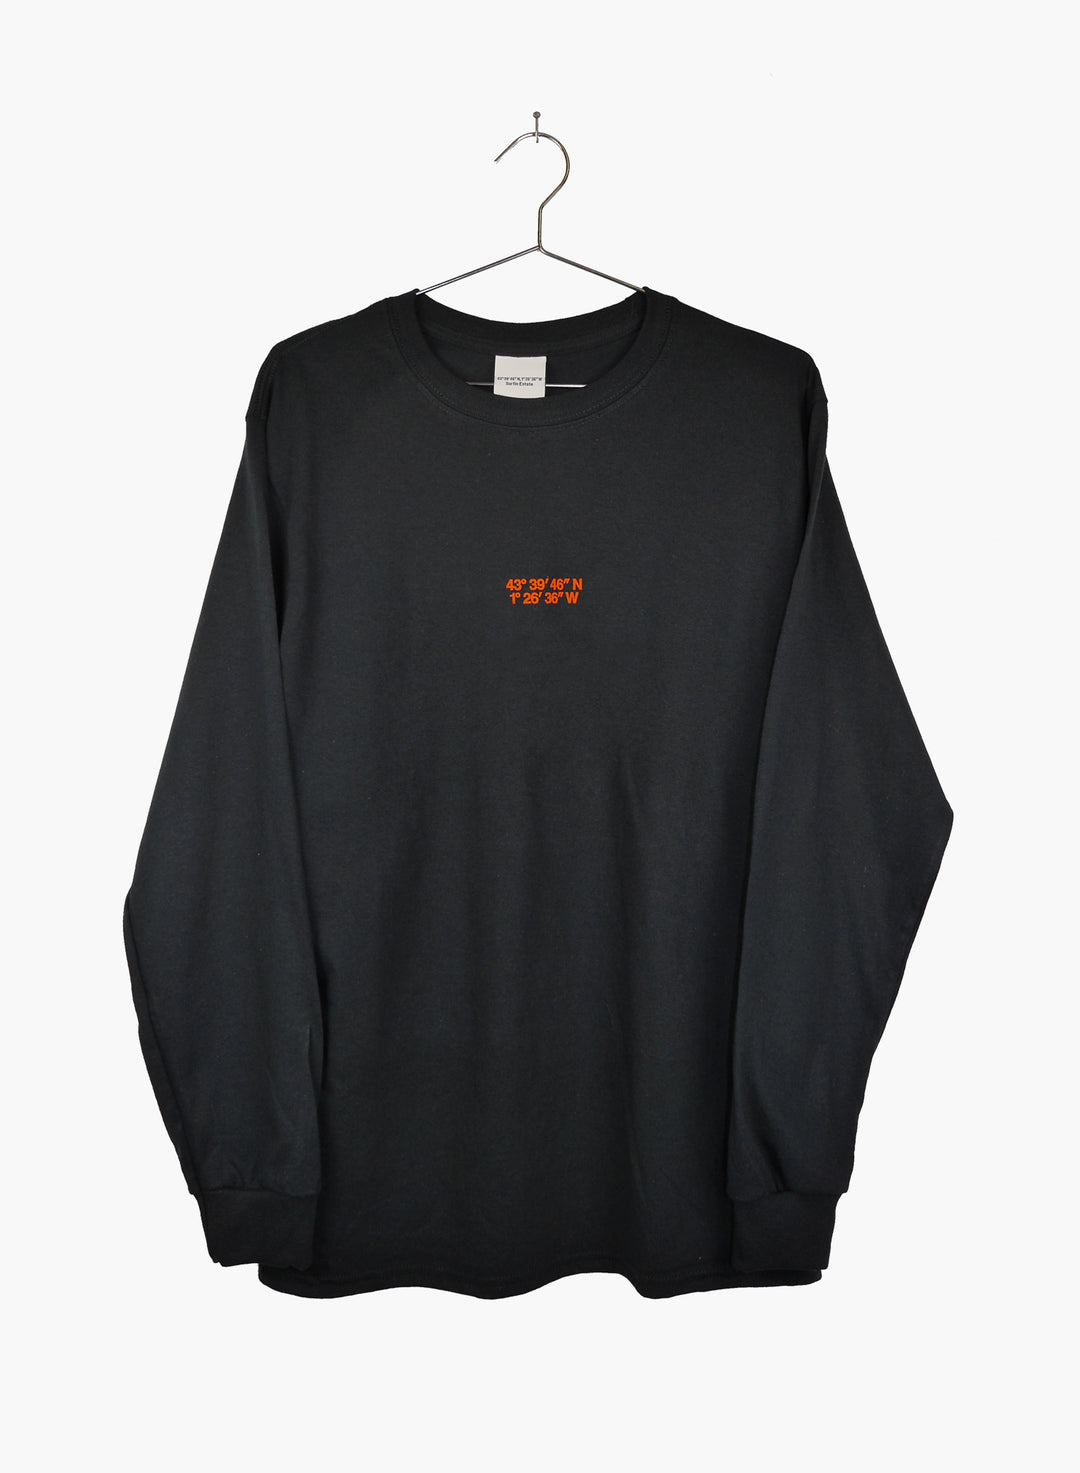 Surfin Estate, long sleeve t shirt, black color.